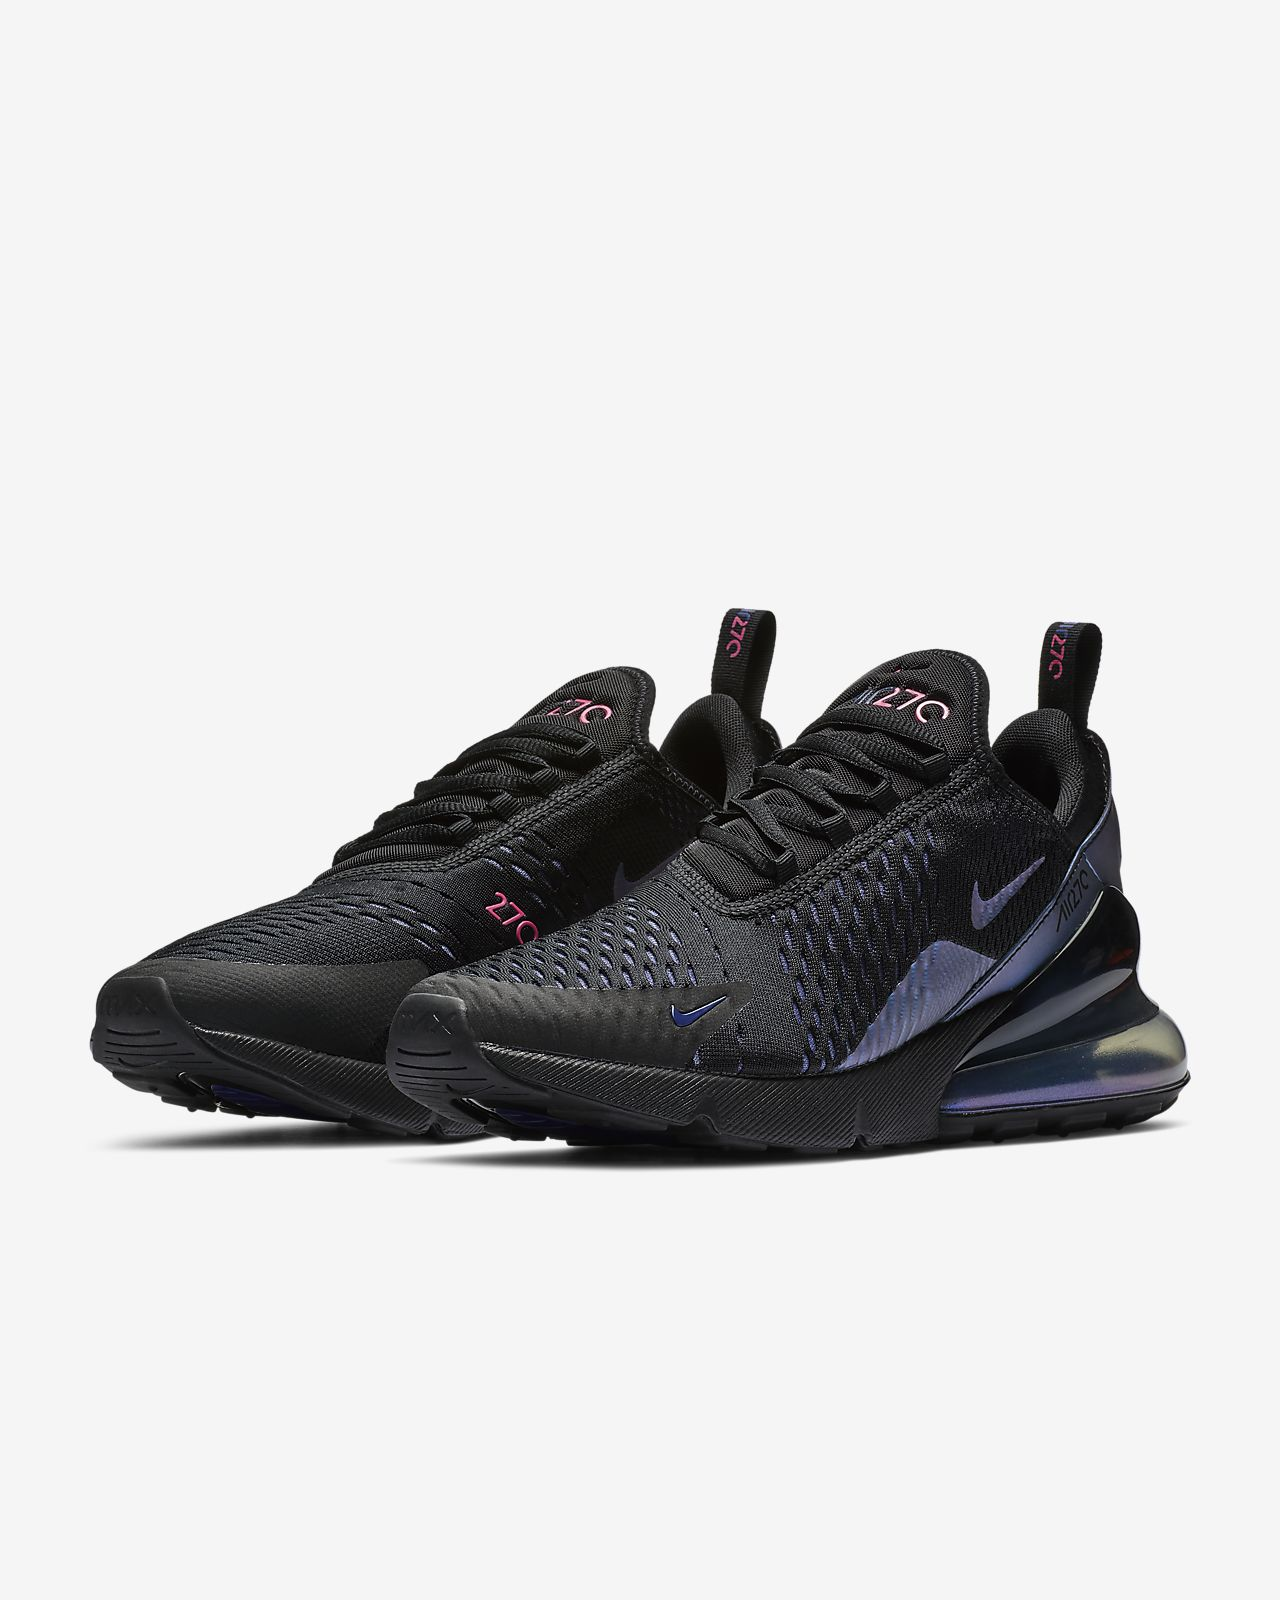 super popular 77b1d 105d9 Low Resolution Nike Air Max 270 Zapatillas - Hombre Nike Air Max 270  Zapatillas - Hombre